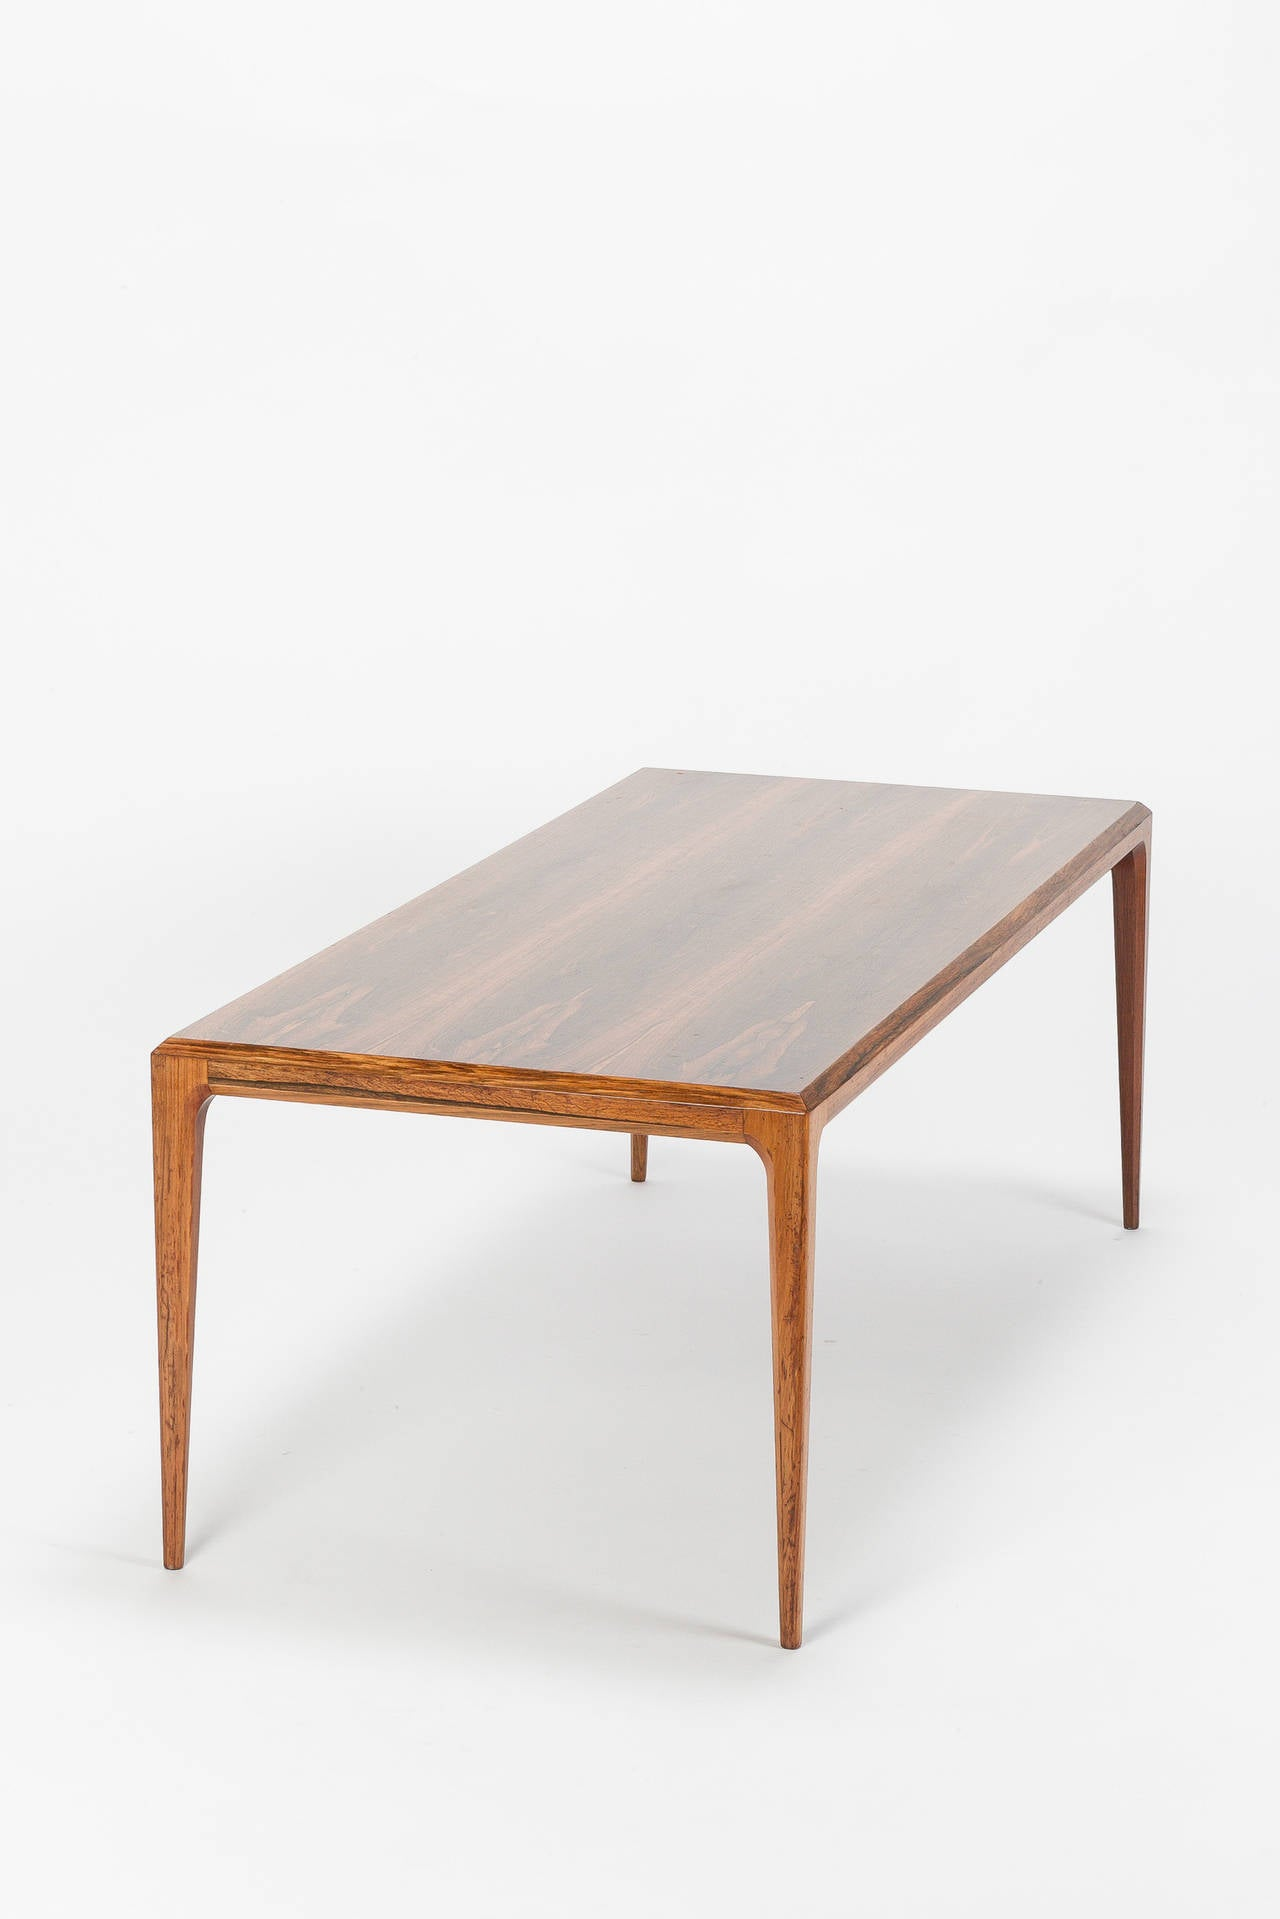 Mid-20th Century Danish Rosewood Coffee Table by Johannes Andersen Silkeborg, 1960s For Sale